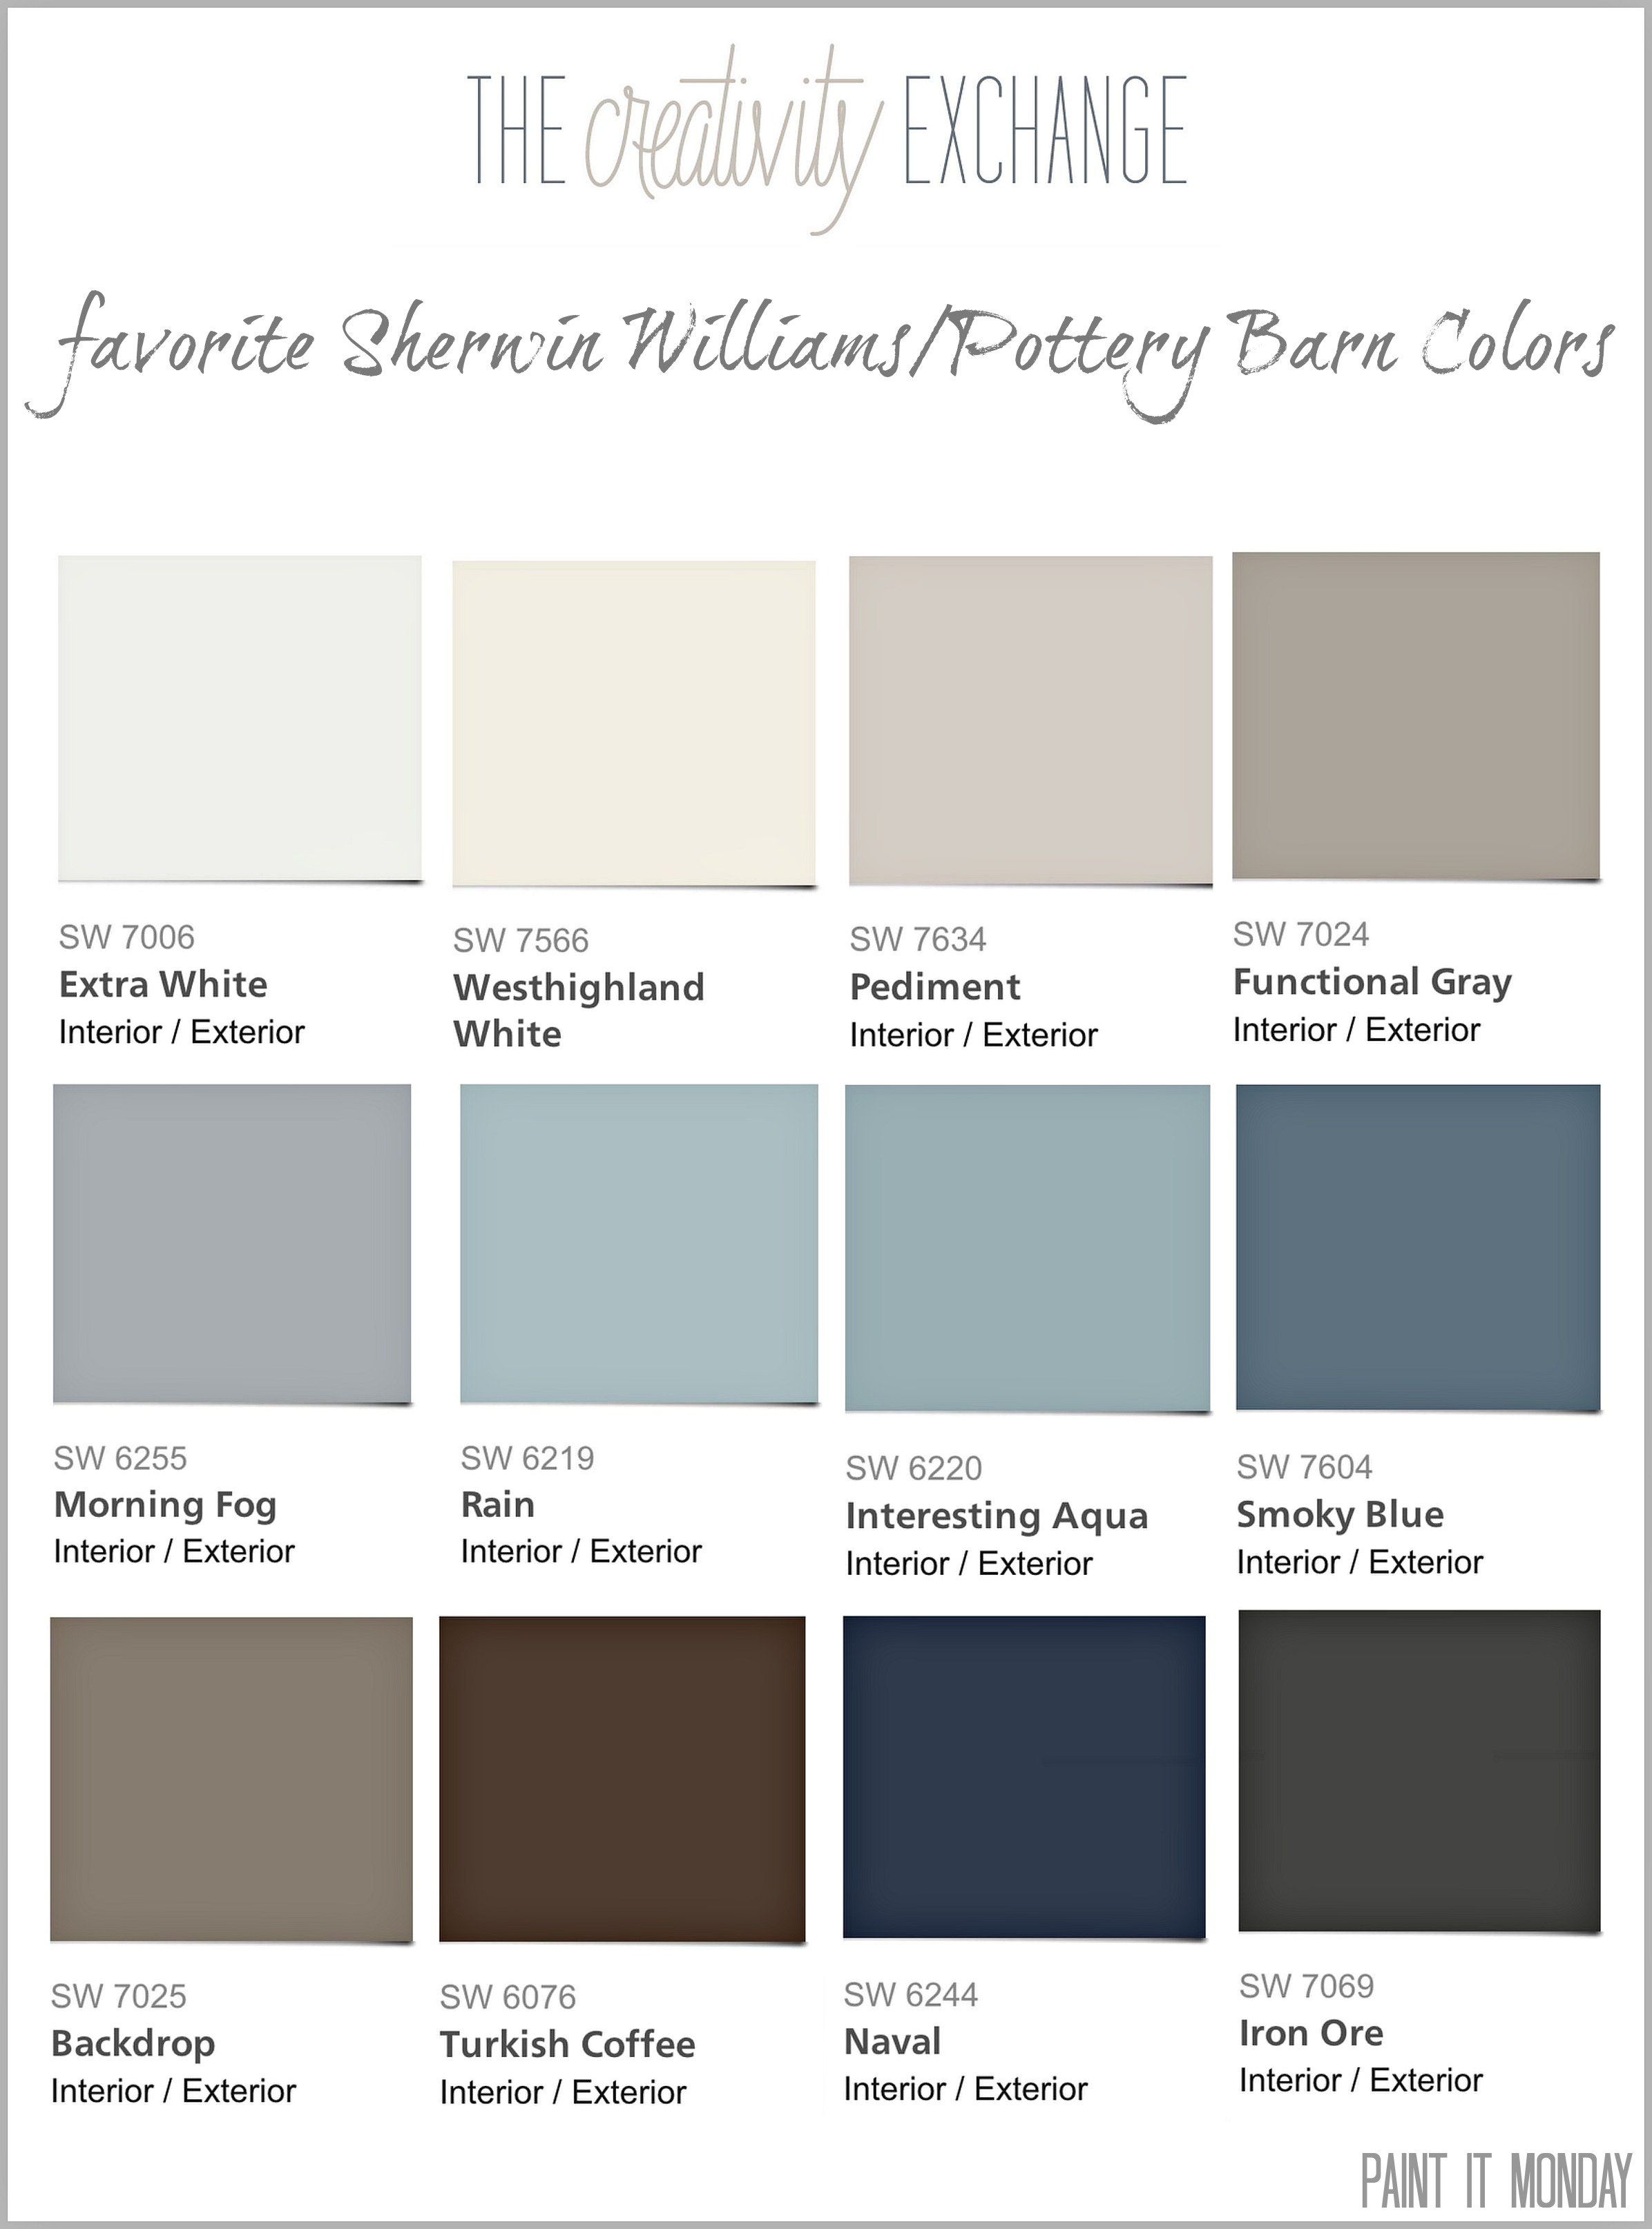 Readersu0027 Favorite Paint Colors {Color Palette Monday} #colorpalette  #paintcolor | Pick A Paint Color | Pinterest | Chocolate Brown Walls,  Mondays And Brown ...